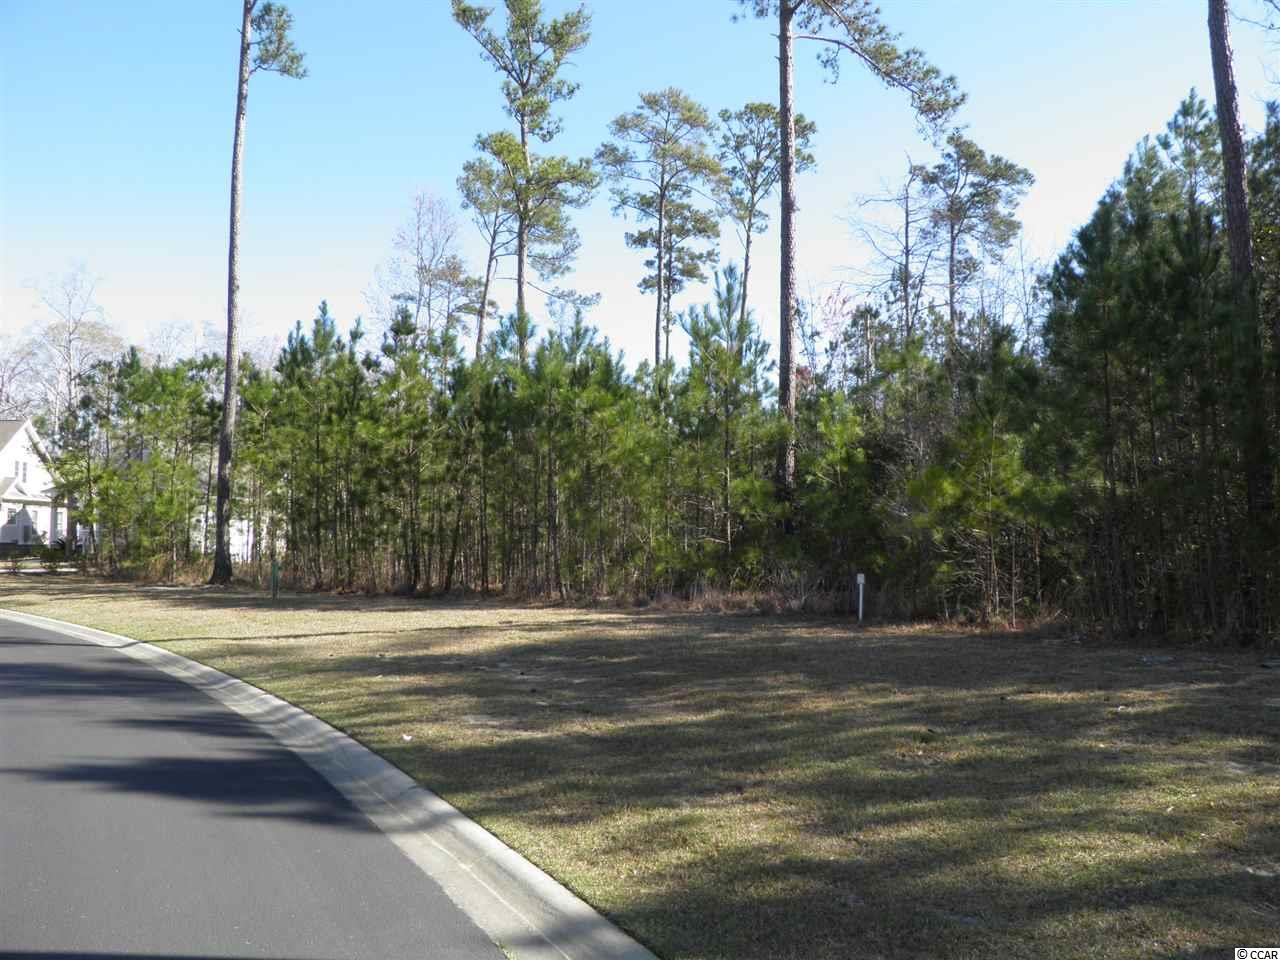 Home site is located in a custom neighborhood of the Bays of Prince Creek. A gated community in Murrells Inlet near TPC players golf course. The Bays community includes a ten acre amenity center with 2 pools, club house, lighted tennis, picnic area and more. A short drive to shopping and Murrells Inlet restaurants for some of the best seafood our area has to offer. No time frame to build and you can pick your own builder.